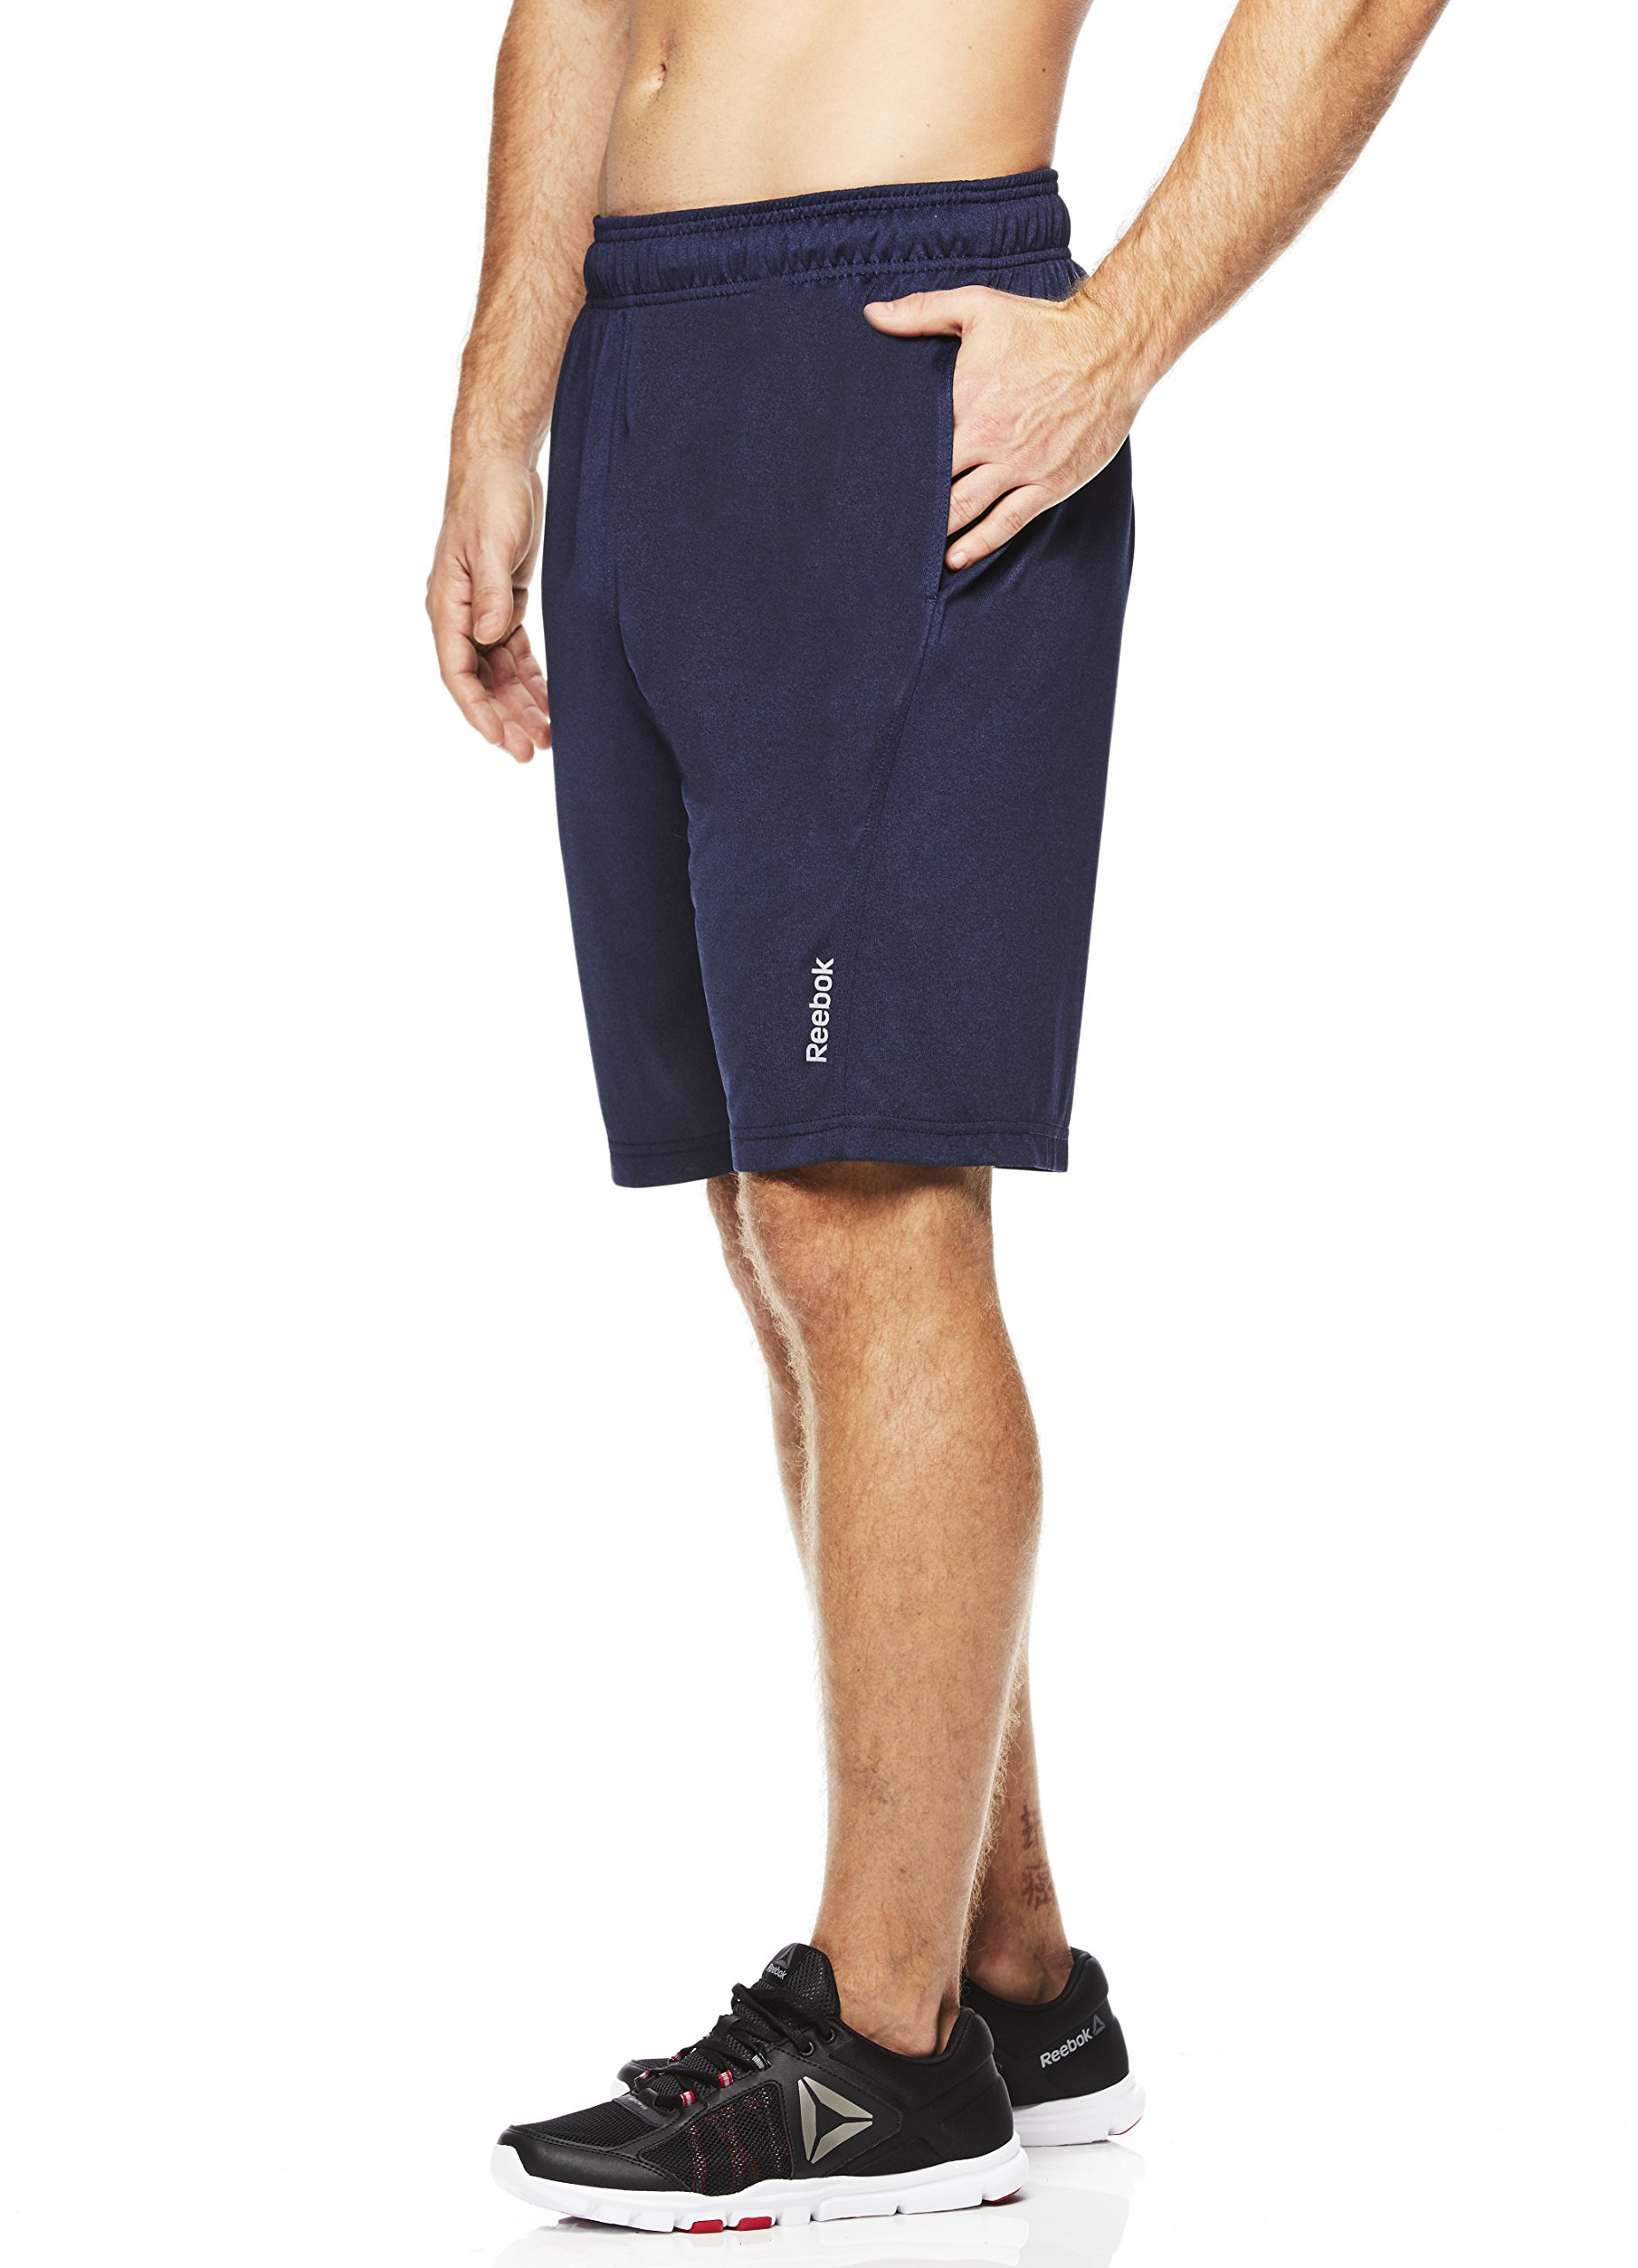 Reebok Men's Drawstring Shorts - Athletic Running & Workout Short - Deep Sea Blue Fireball, Medium